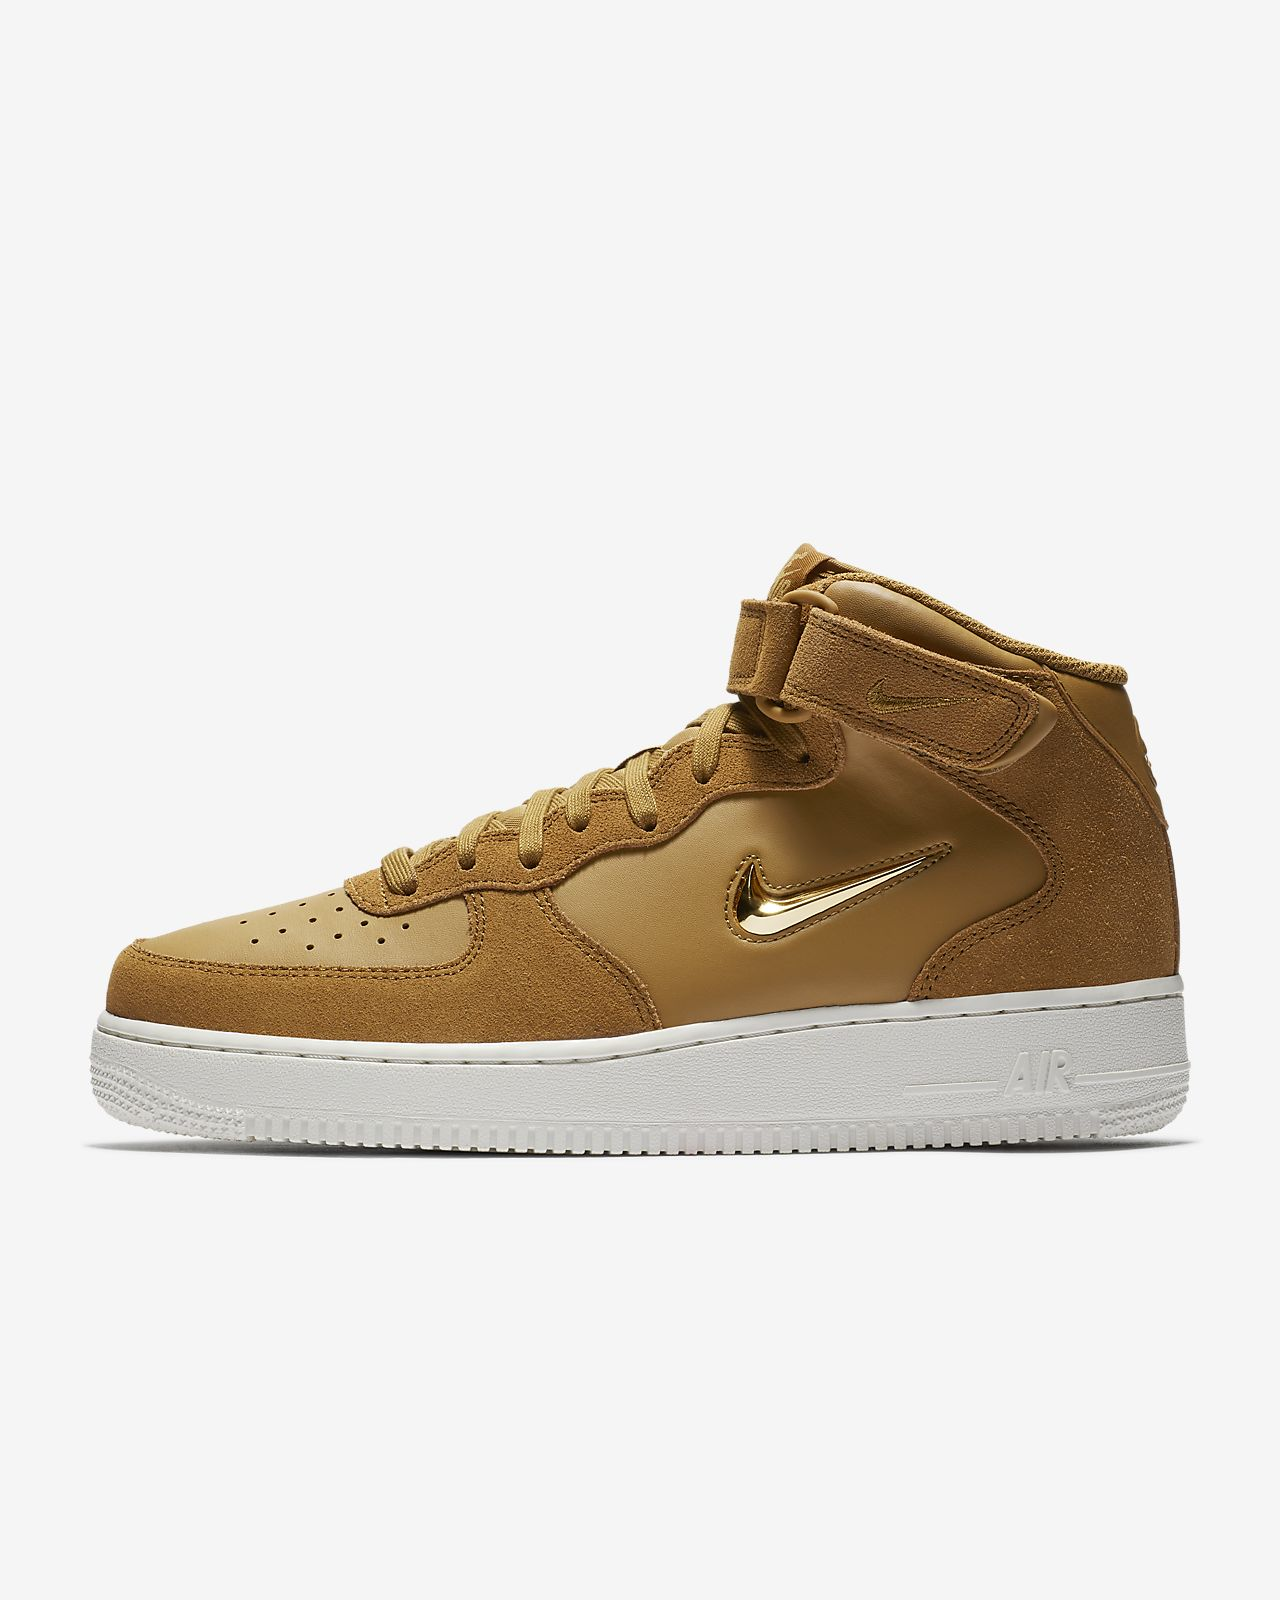 Chaussure Nike Air Force Mid 1 07 Mid Force LV8 pour CH 11eb69